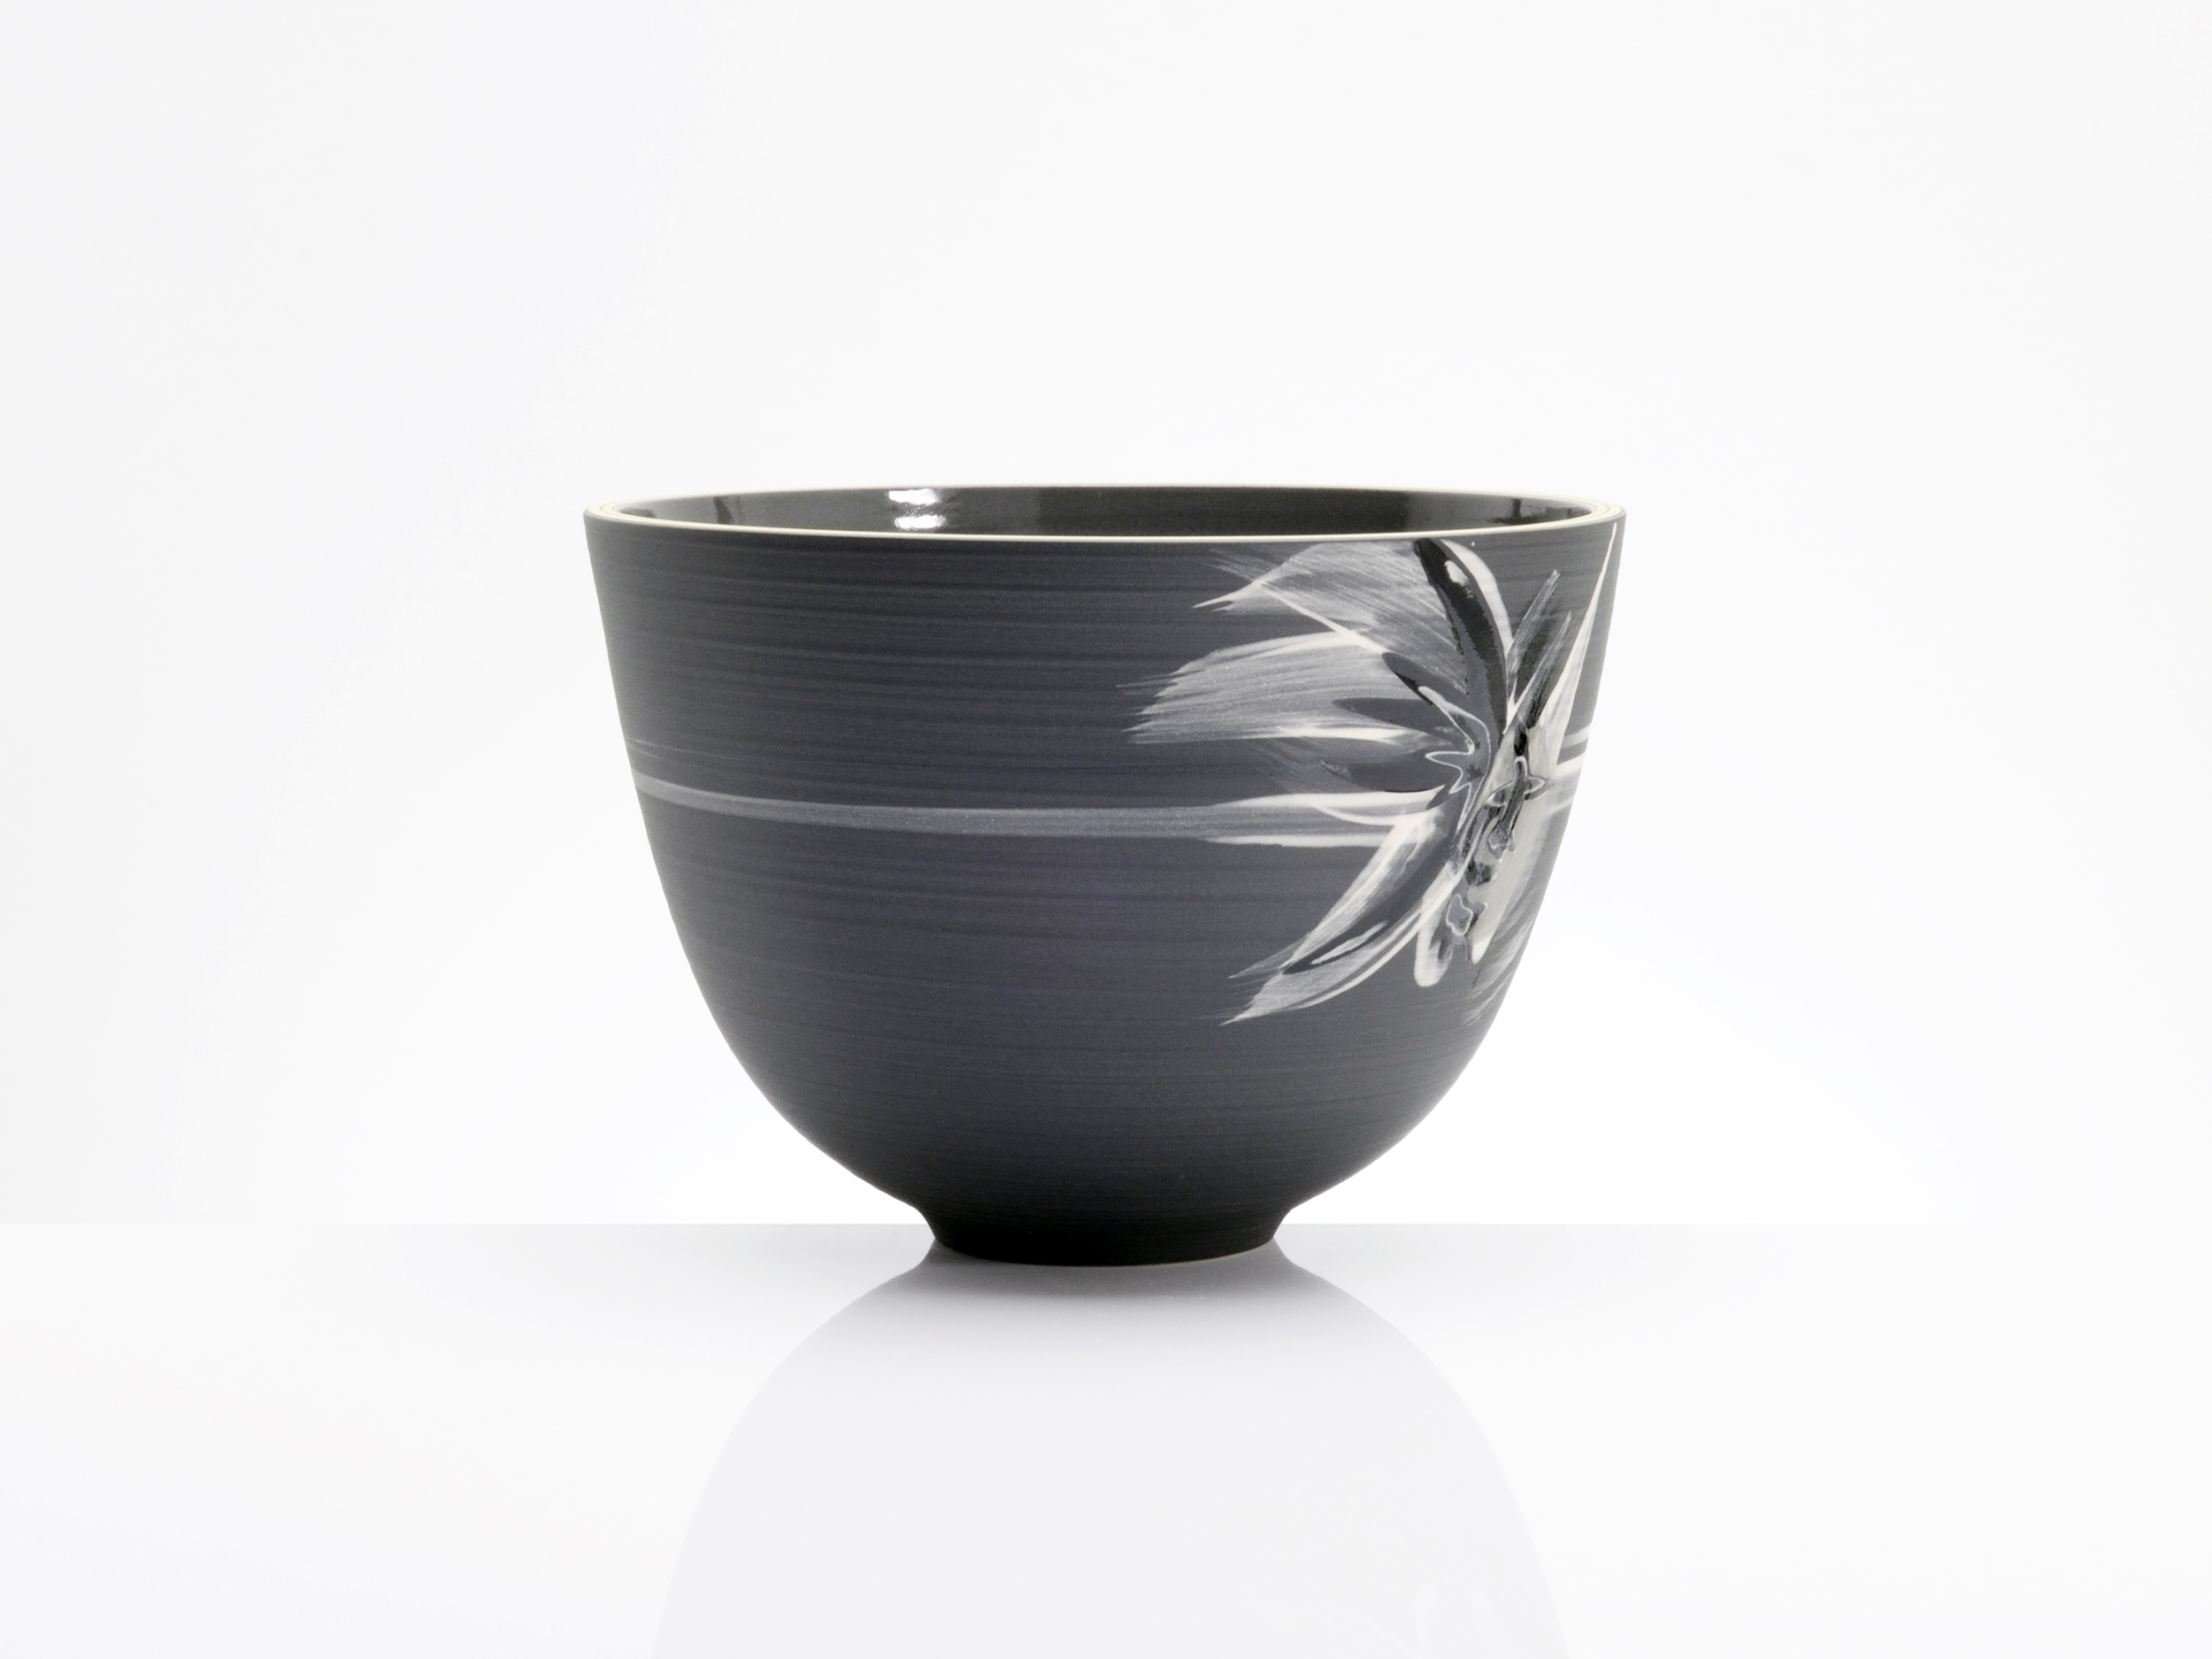 Charcoal Black Abstract Art Bowl by Rowena Gilbert